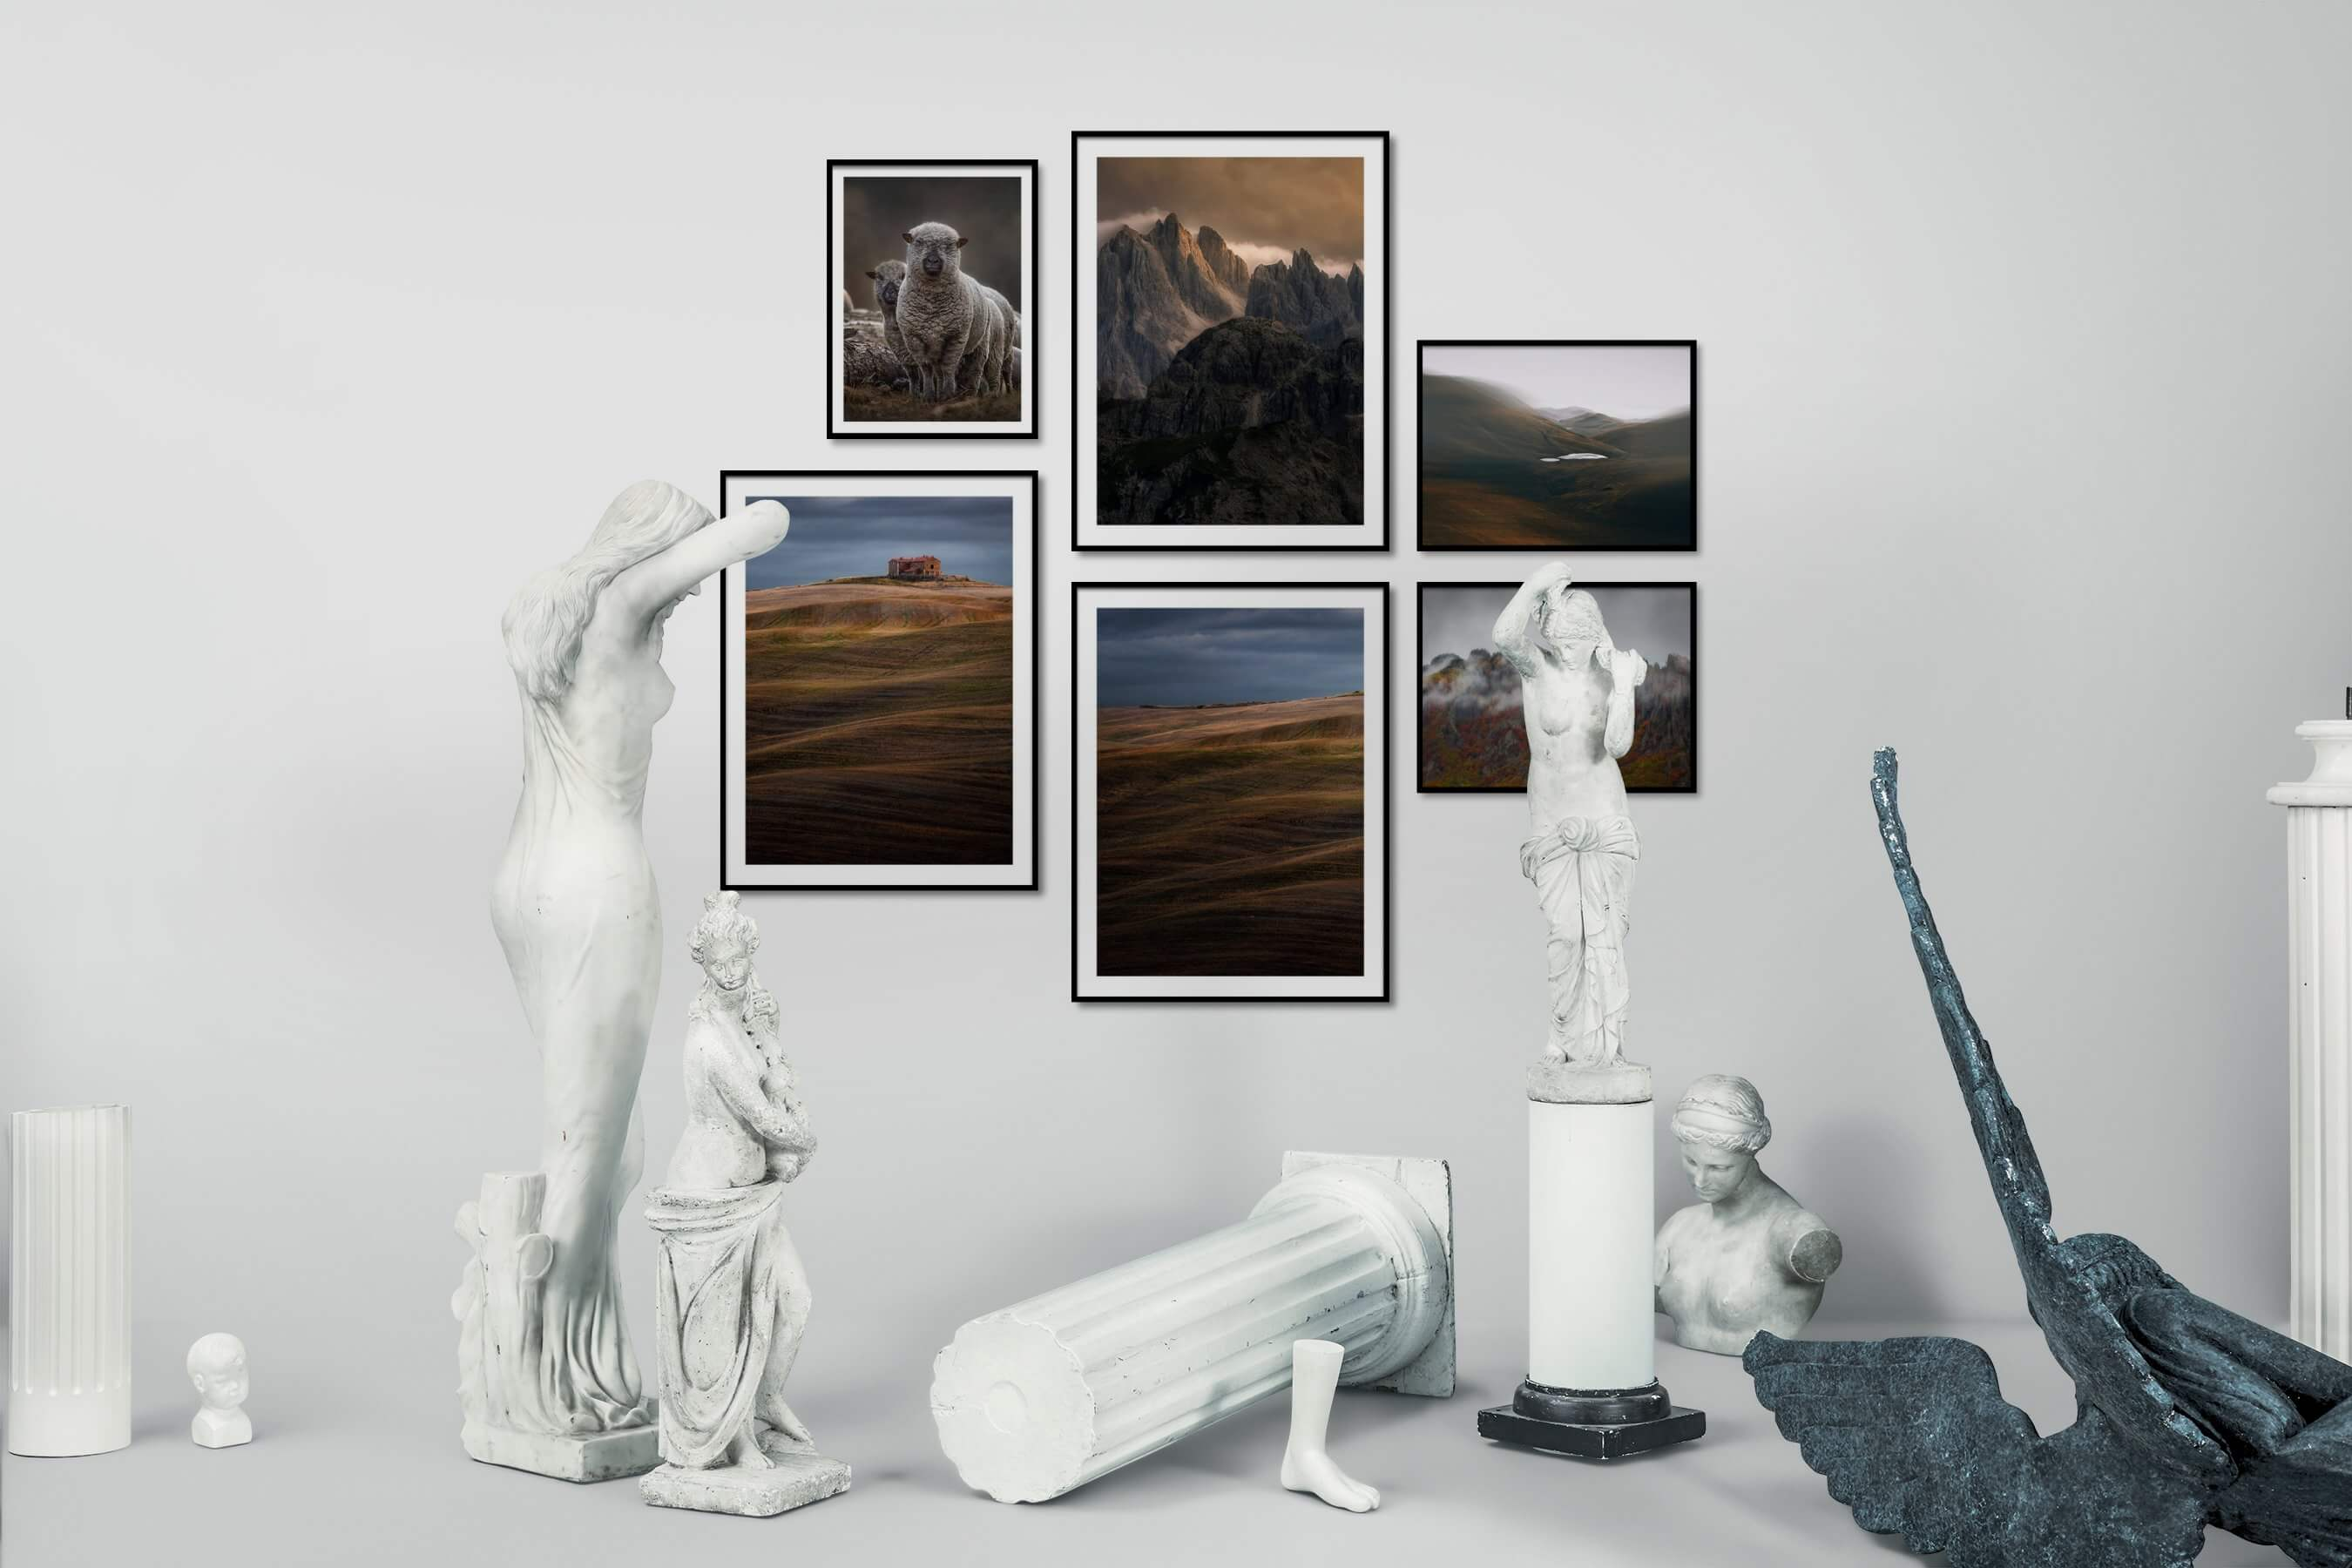 Gallery wall idea with six framed pictures arranged on a wall depicting Animals, Country Life, Nature, For the Moderate, and Mindfulness